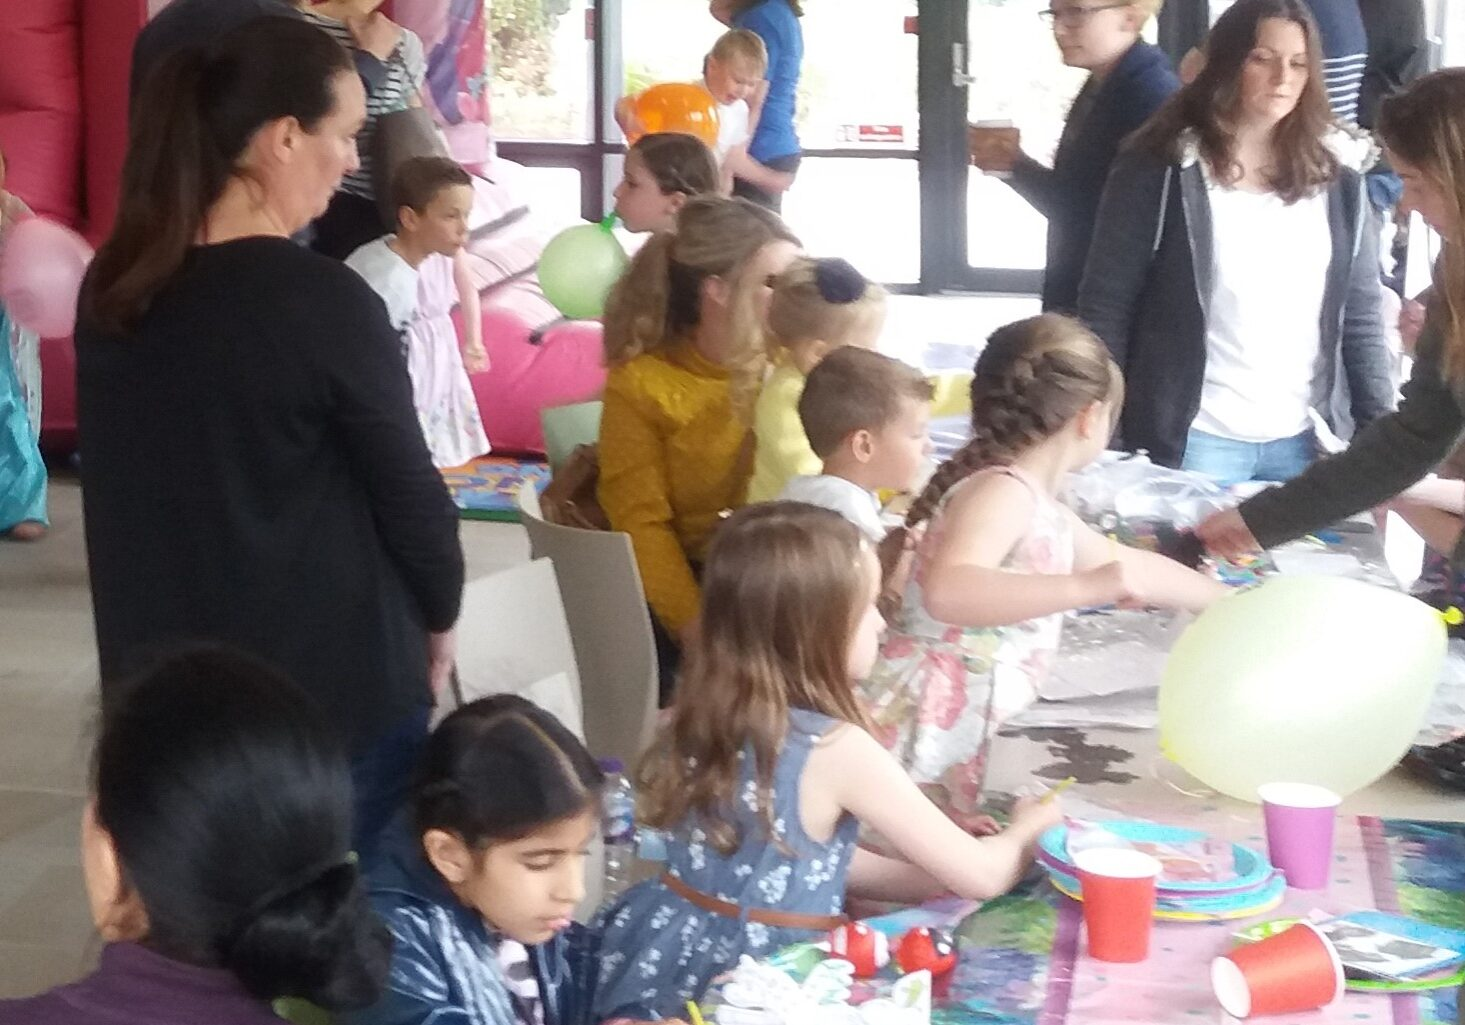 Children's birthday party in the Lodge